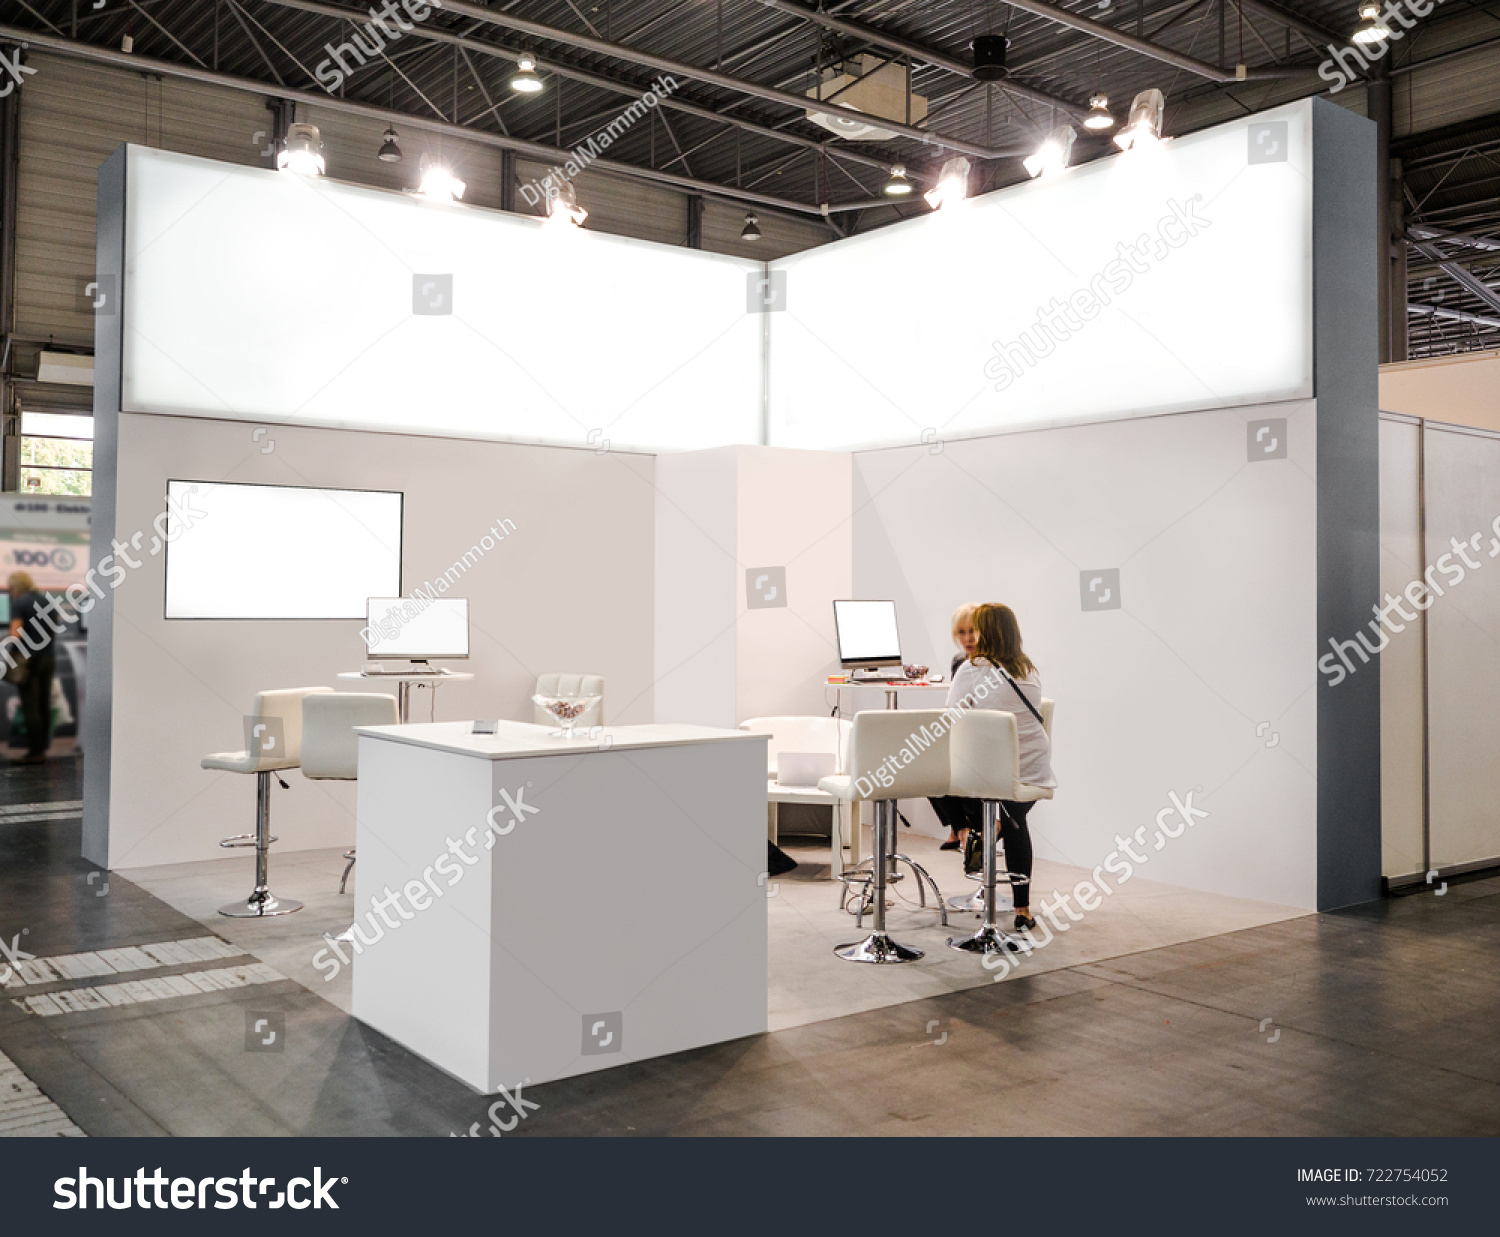 Creative Exhibition Stand : Blank mock creative exhibition stand design stock photo